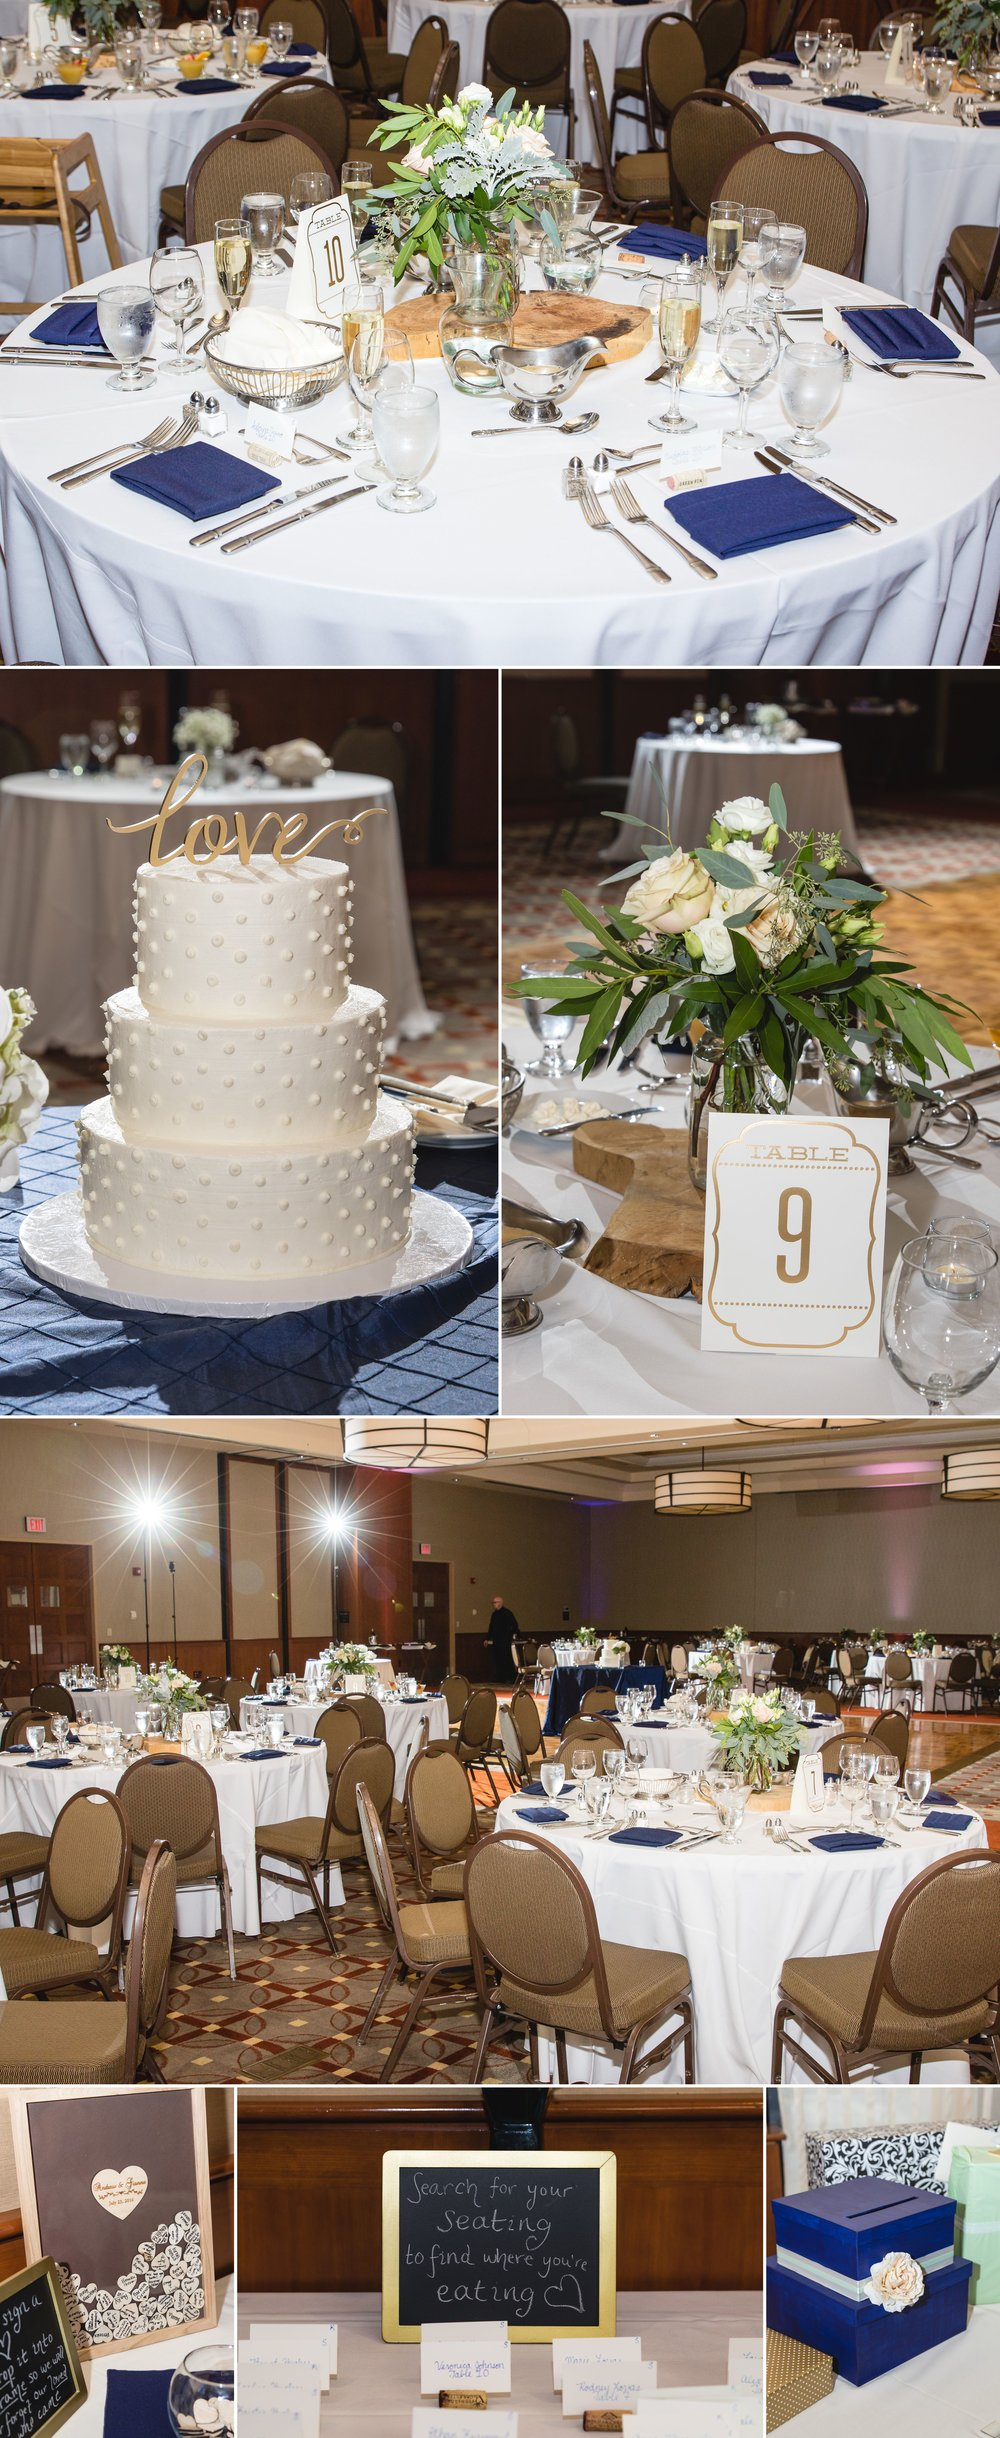 our-lady-of-victory-catholic-church-wedding-ceremony-the-blackwell-reception-portraits-columbus-ohio-muschlitz-photography-010.JPG